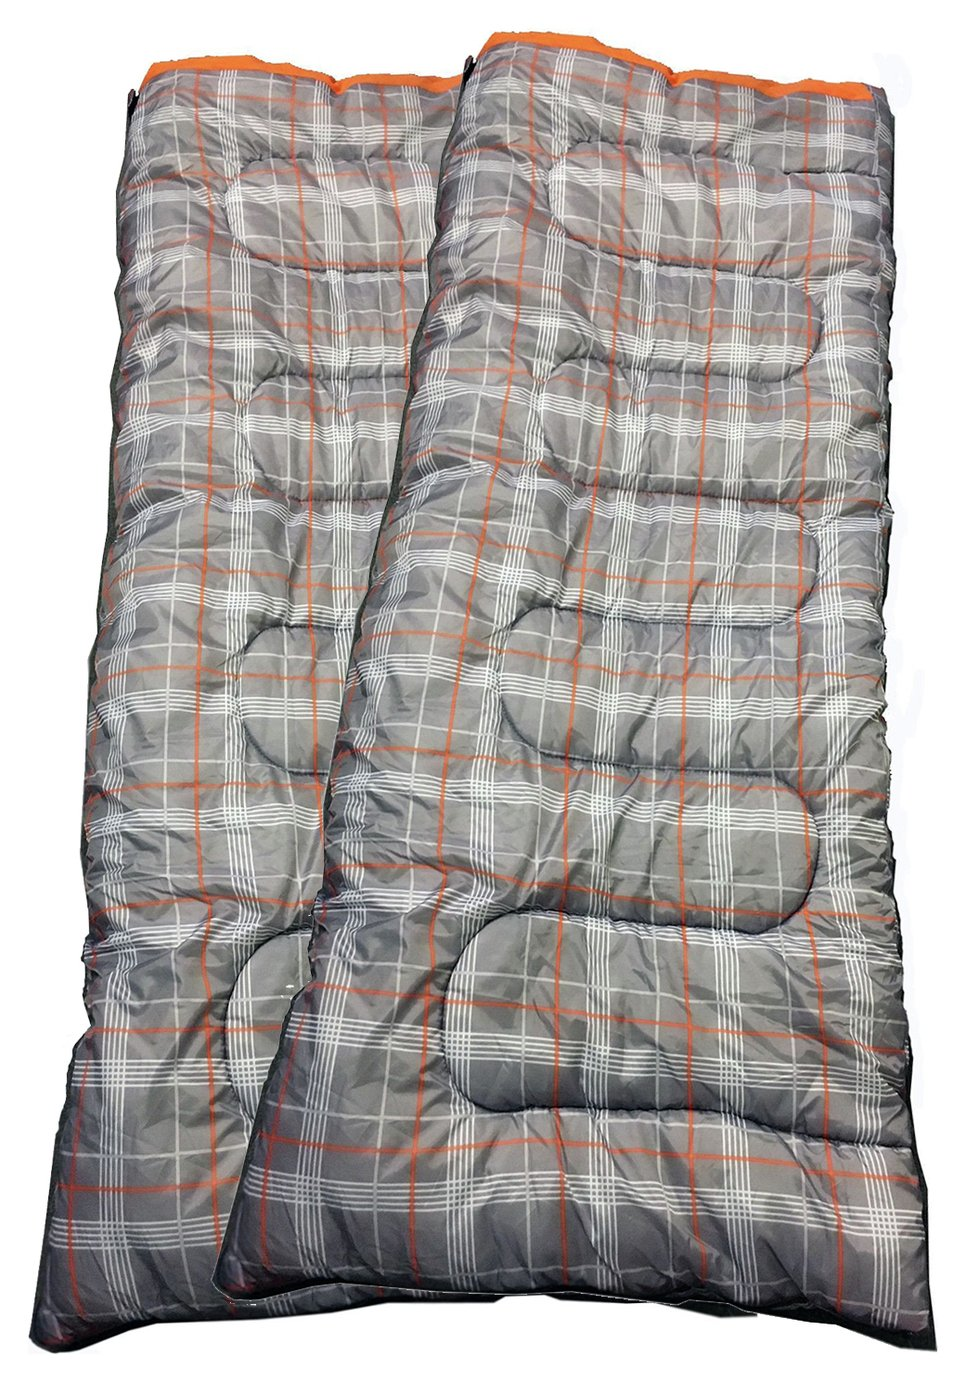 Olpro Double 300GSM Hush Patterned Sleeping Bag